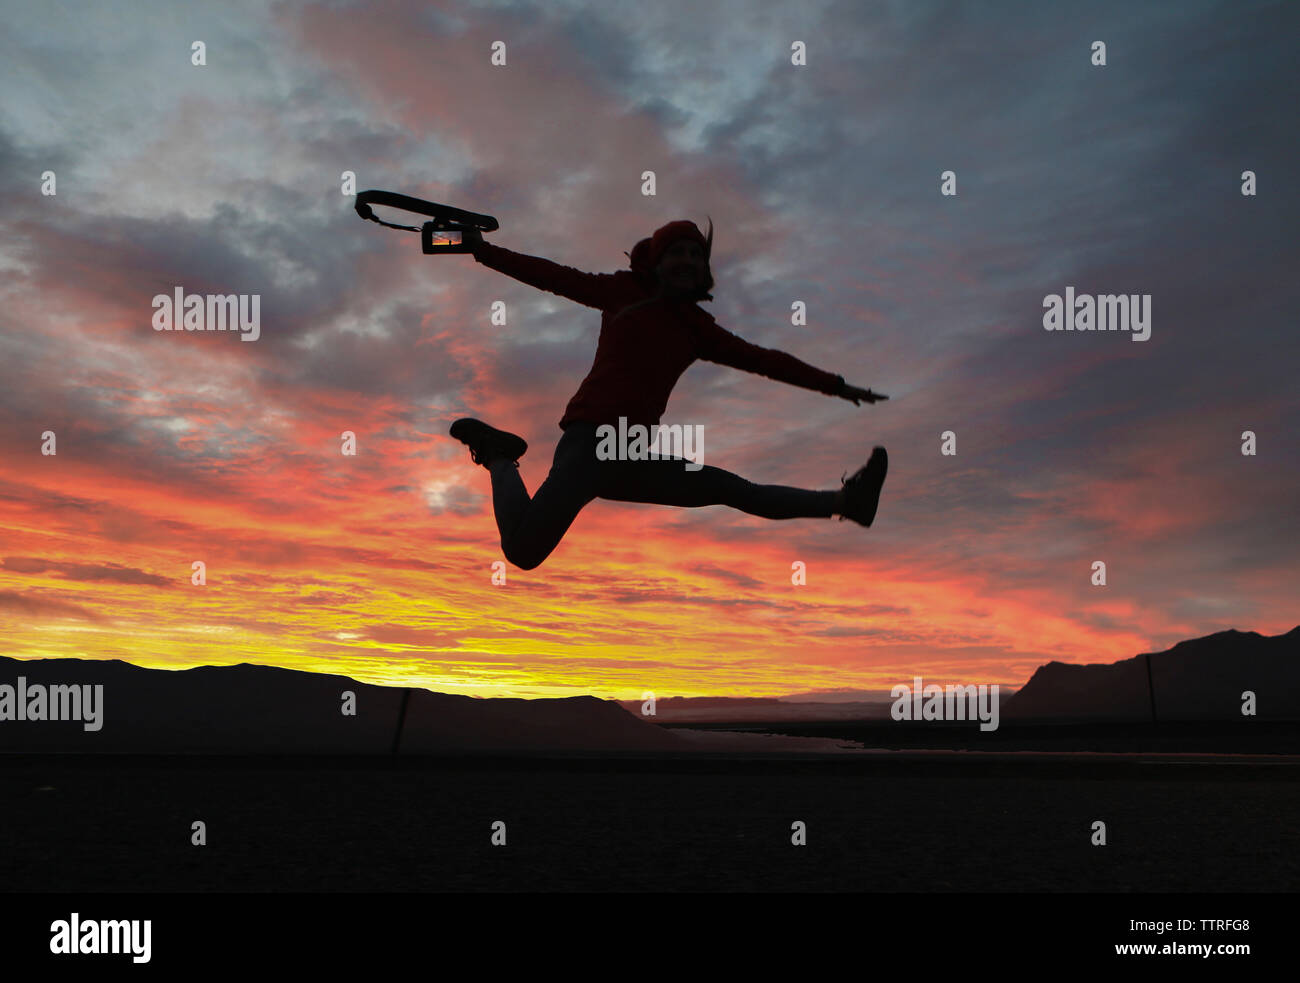 Excited hiker holding camera while jumping against dramatic sky - Stock Image